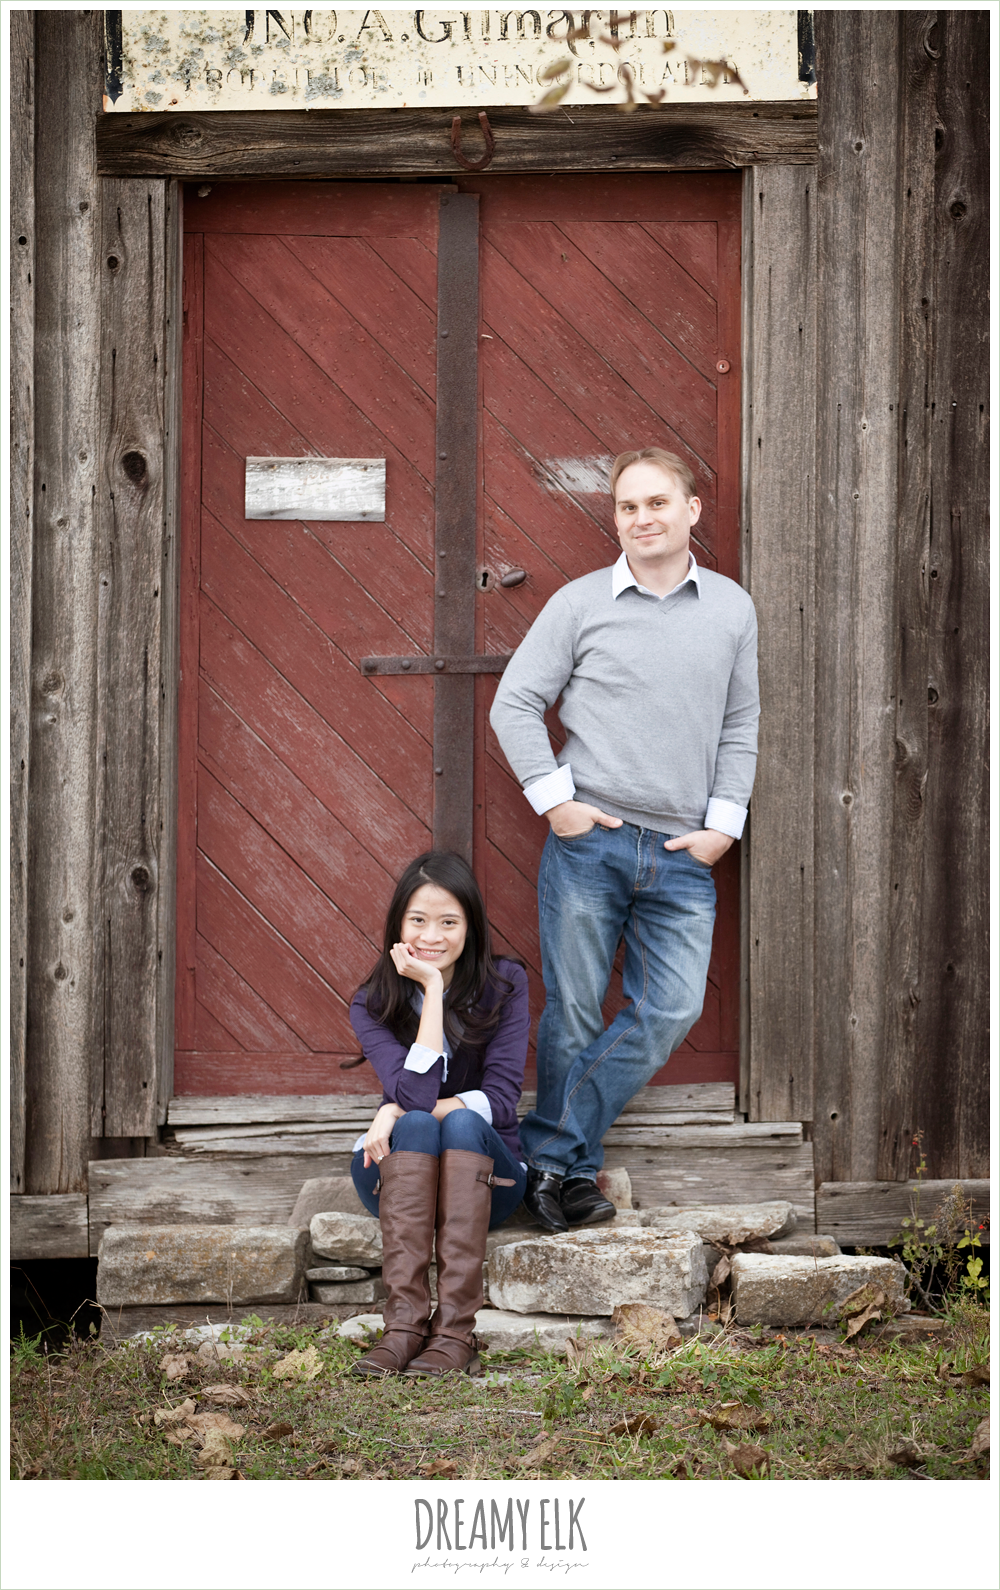 shin and derek, rustic winter engagements, dreamy elk photography and design